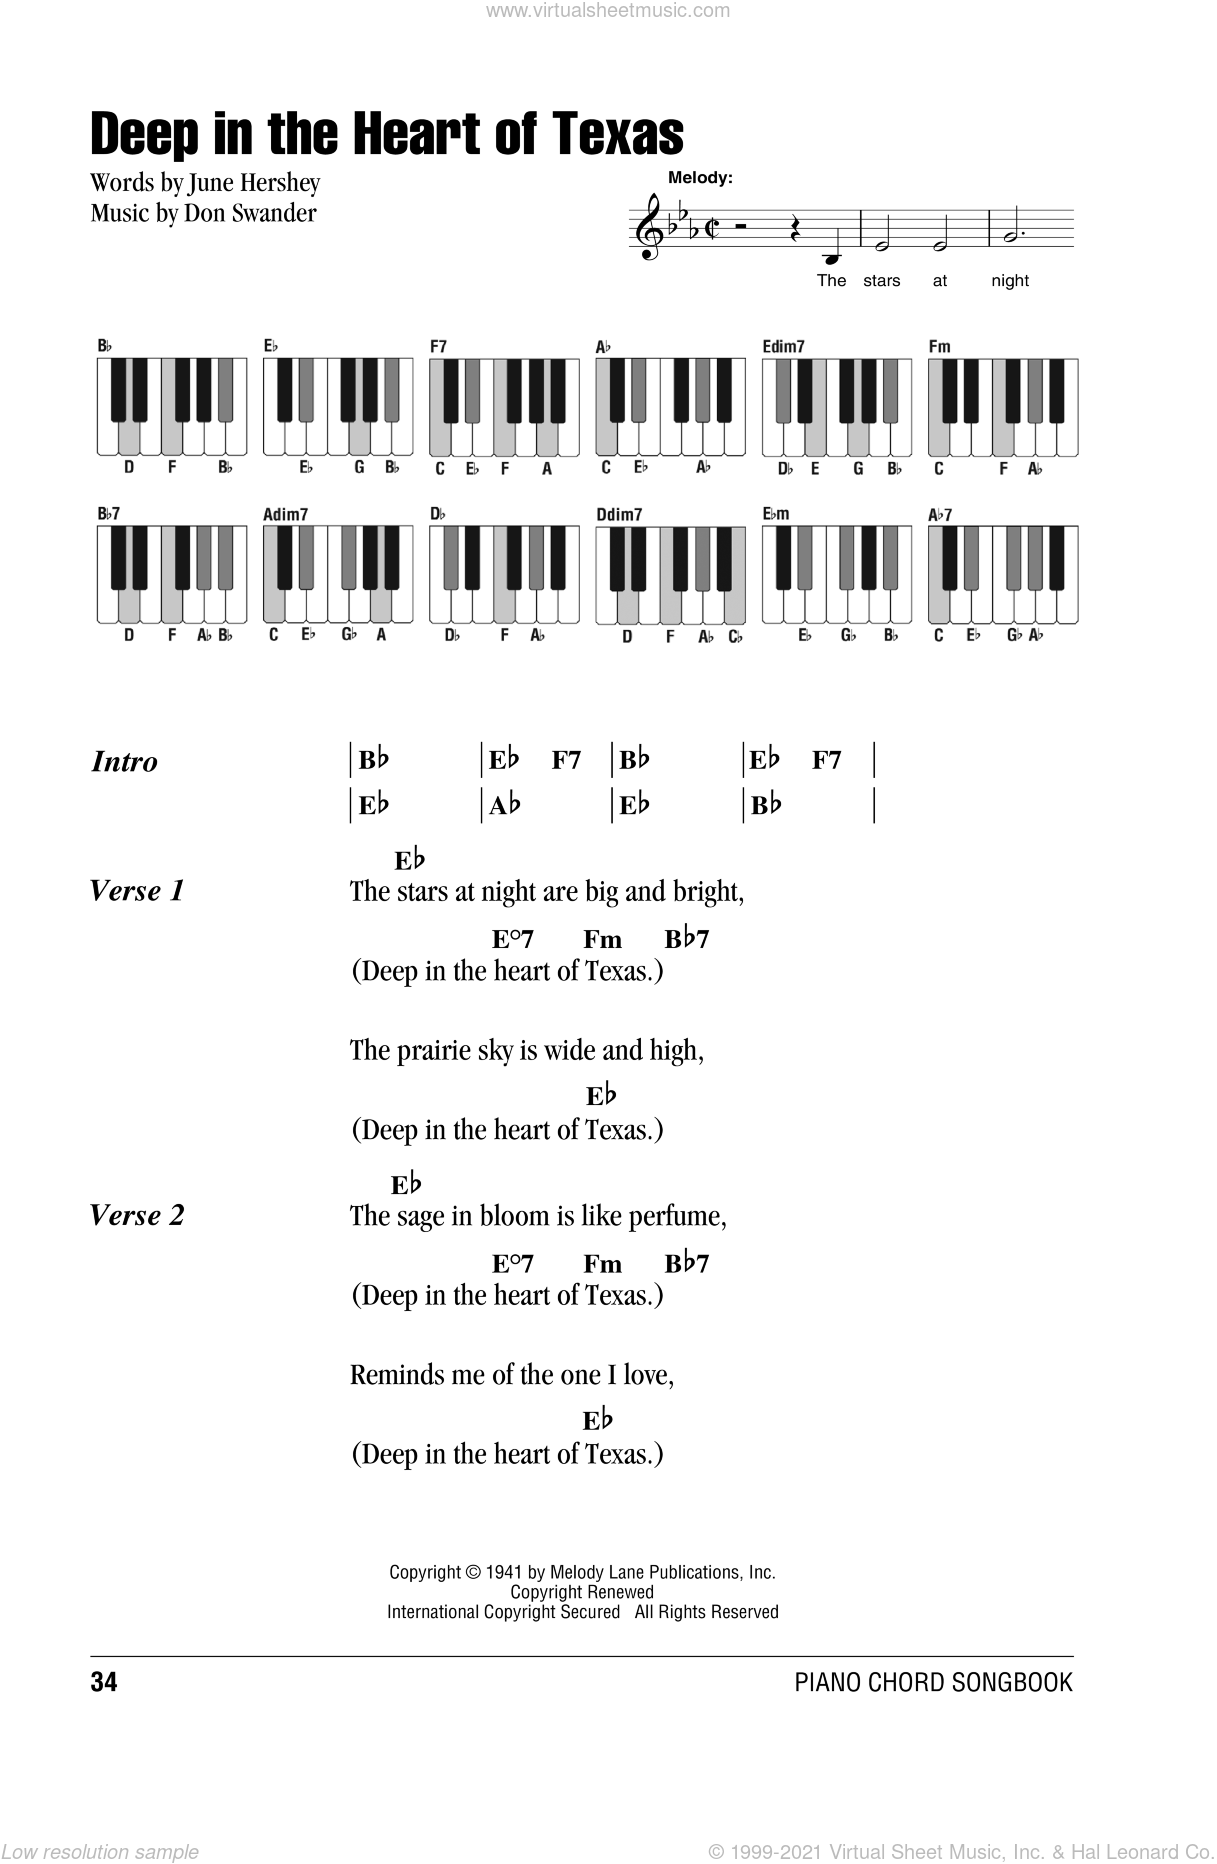 Deep In The Heart Of Texas sheet music for piano solo (chords, lyrics, melody) by Alvino Rey & His Orchestra, Don Swander and June Hershey, intermediate piano (chords, lyrics, melody)